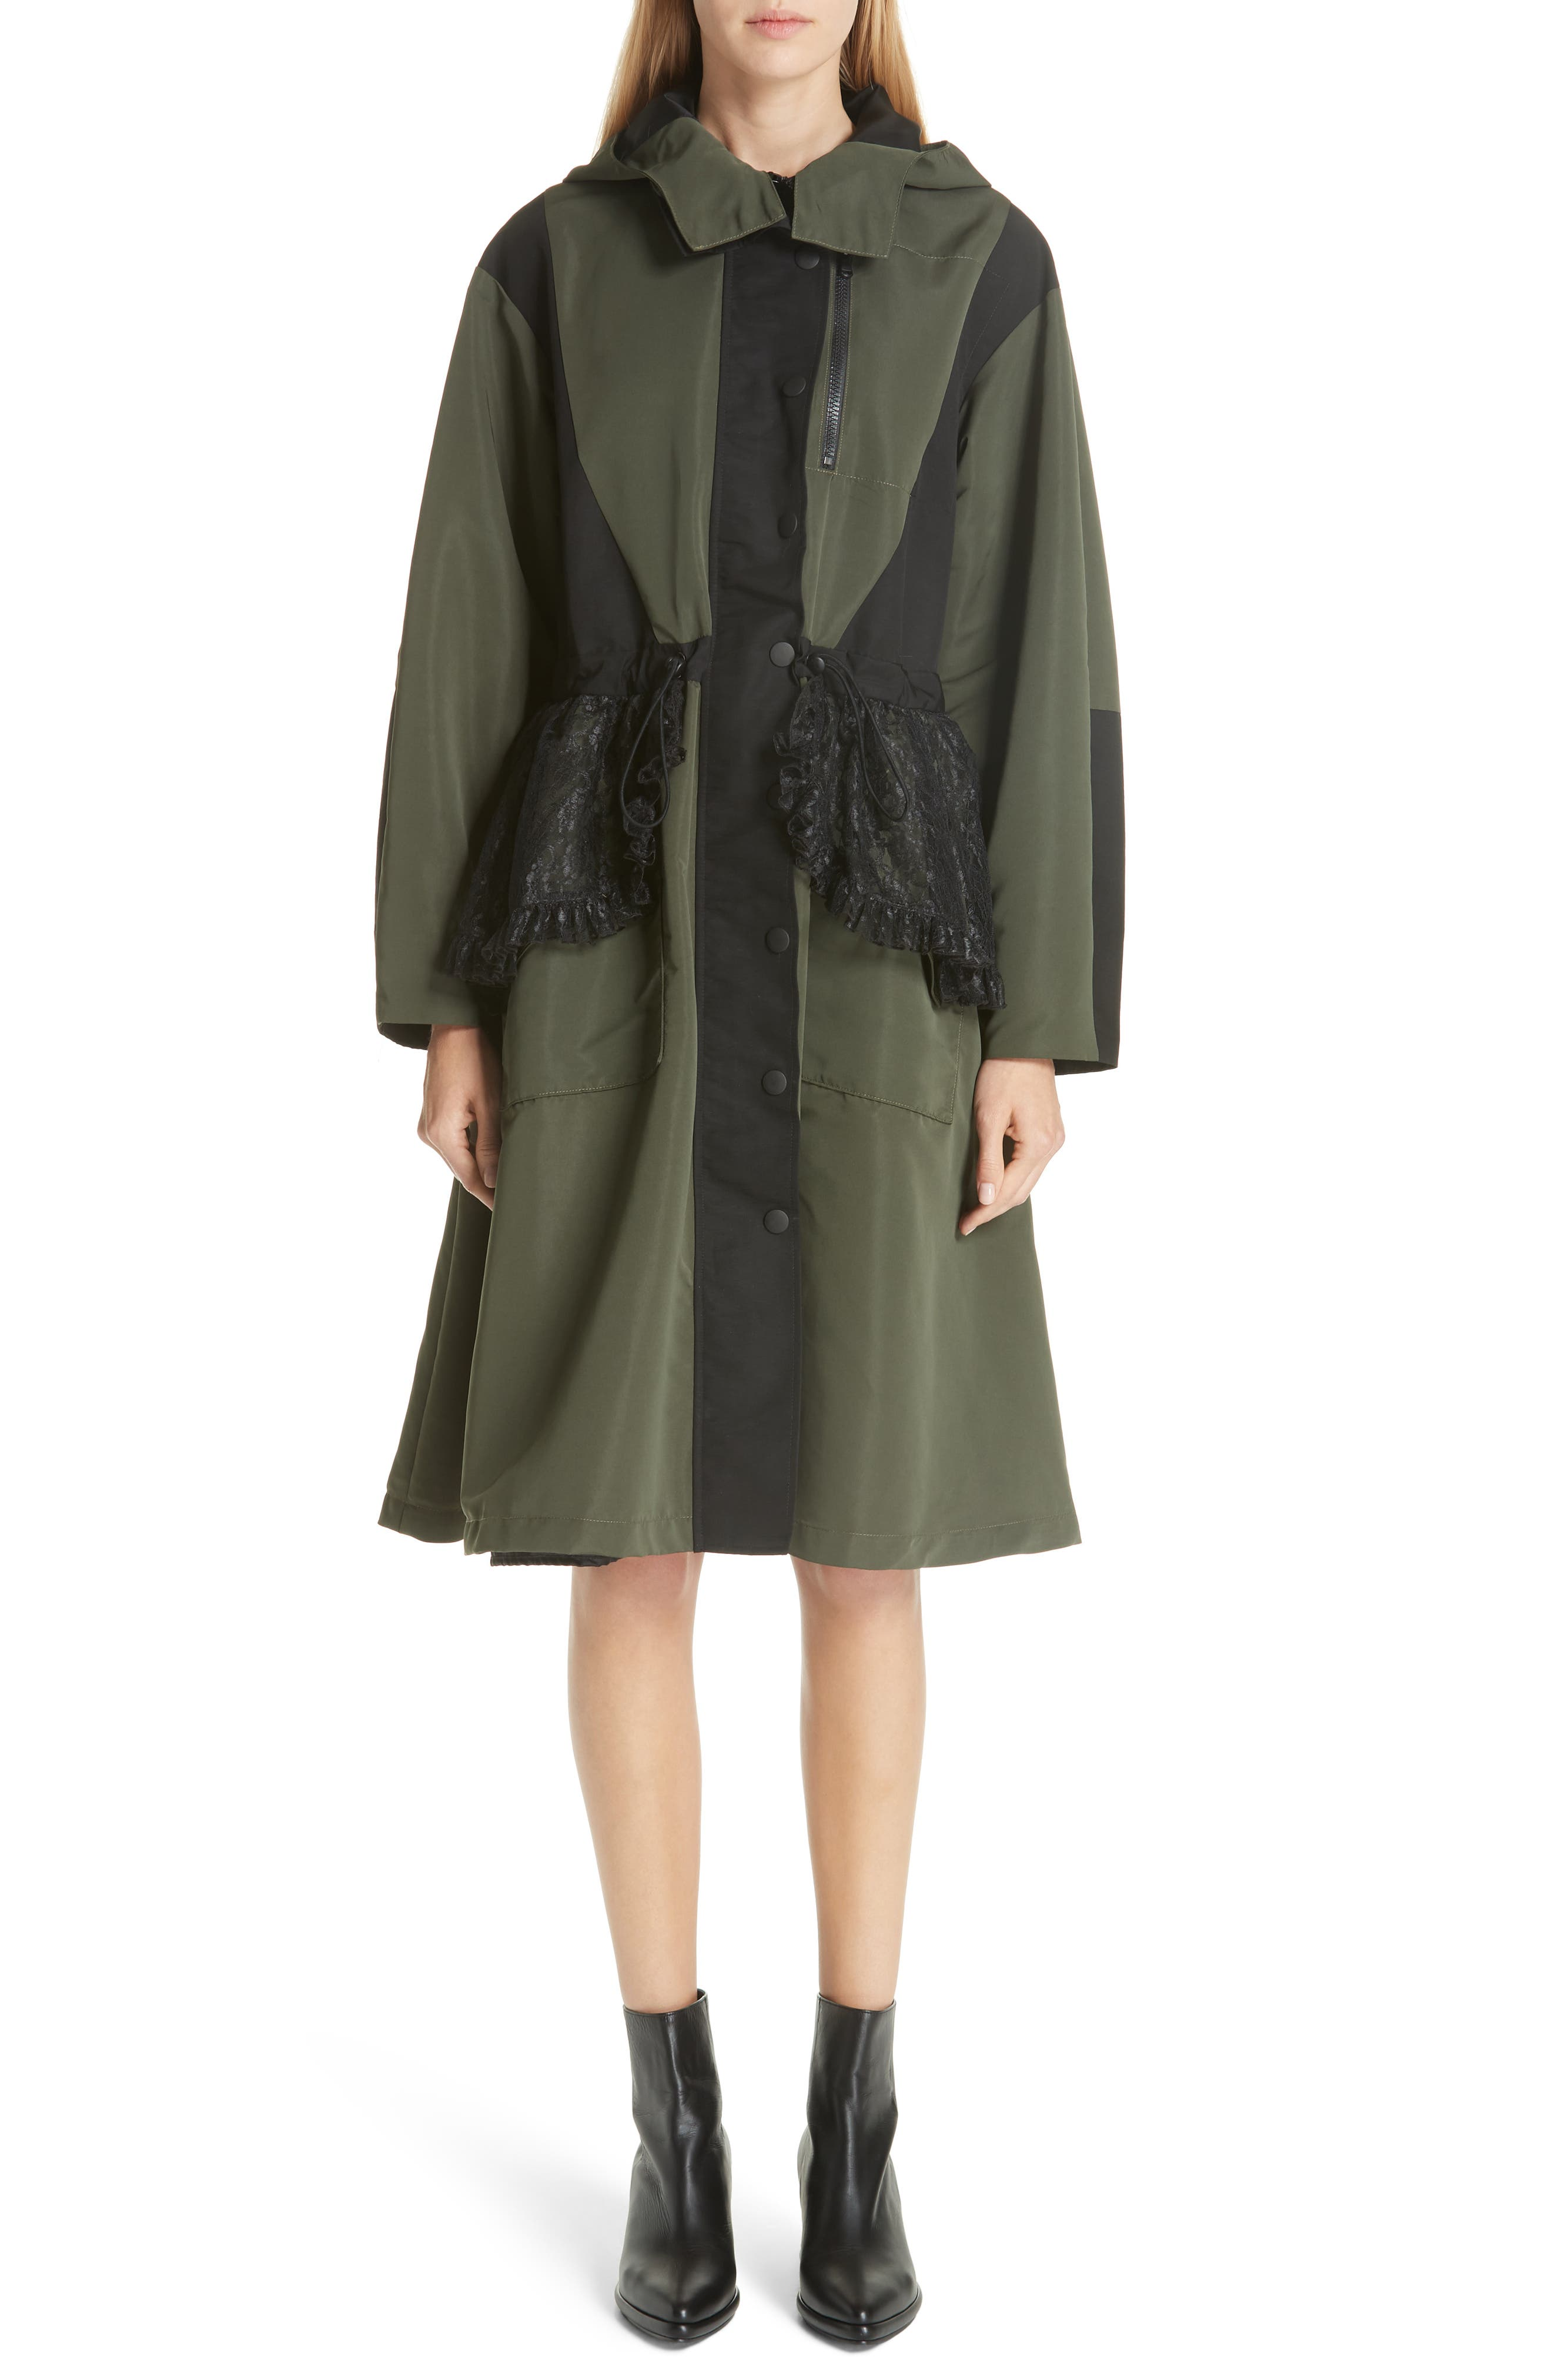 Lace Overlay Hooded Coat,                             Main thumbnail 1, color,                             300